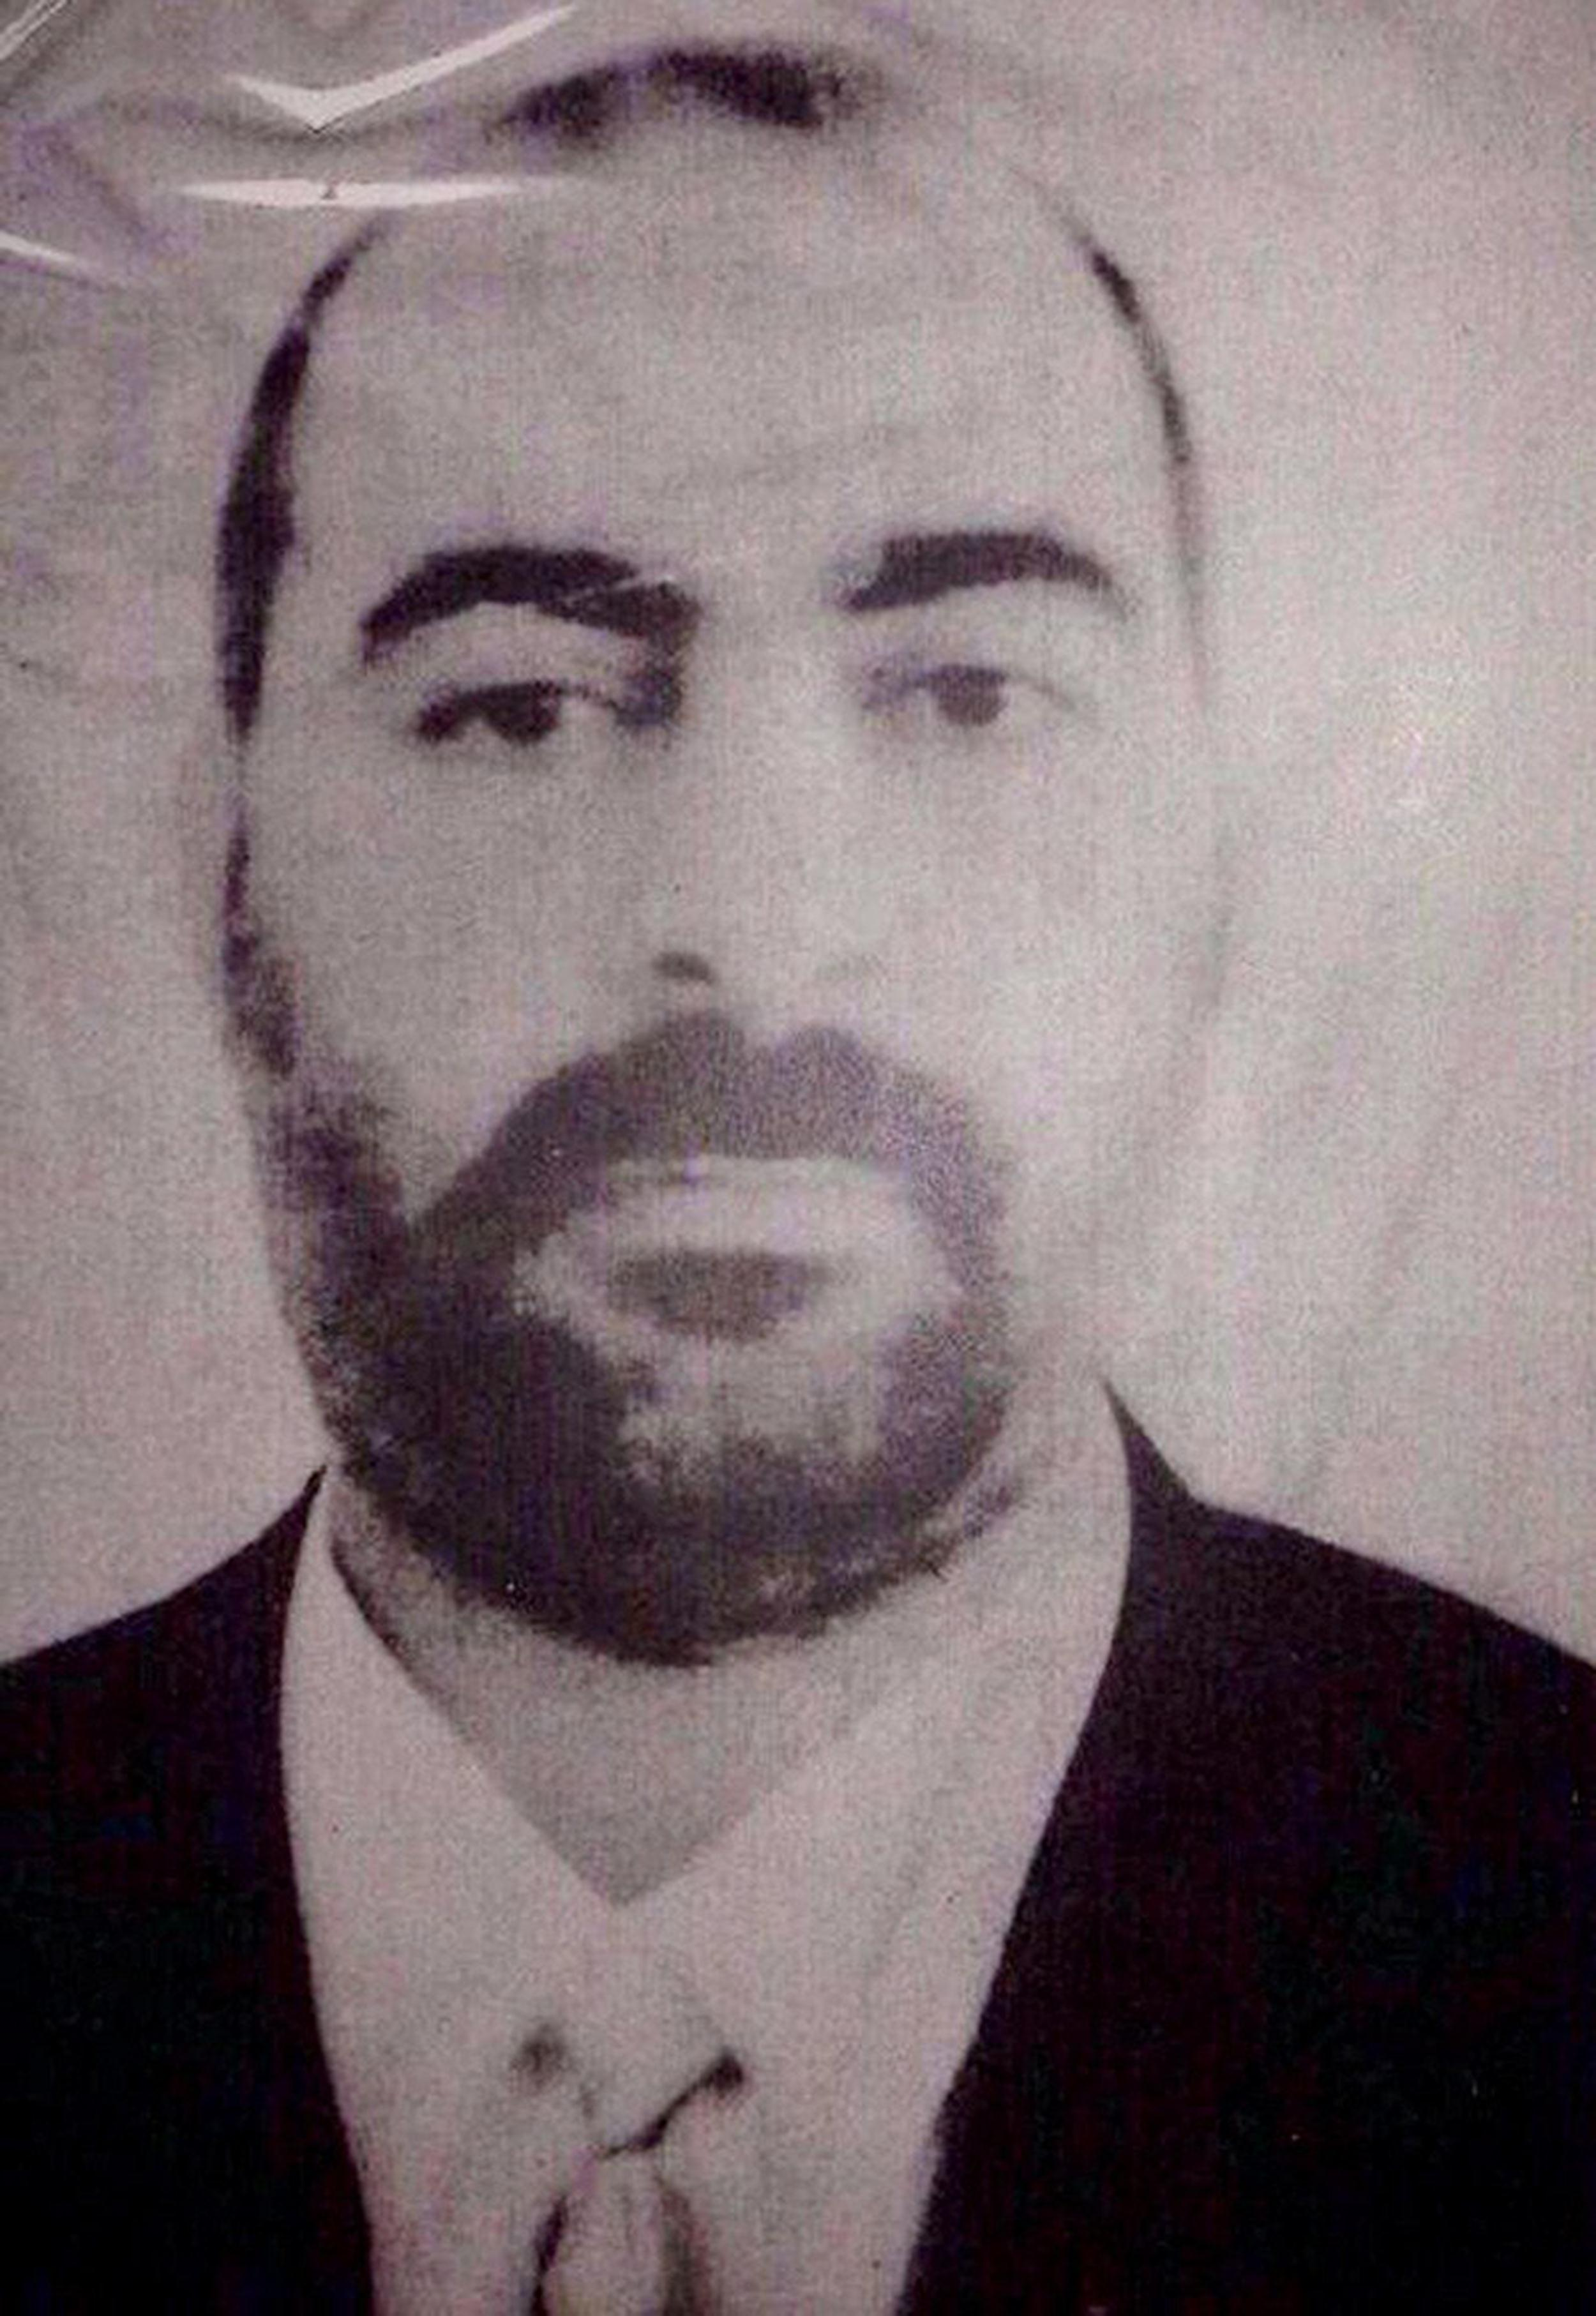 Image: Abu Bakr al-Baghdadi, the leader of the Islamic State of Iraq and the Levant, an Al-Qaeda-linked group fighting in Iraq and Syria, in a photograph released on Jan. 29.